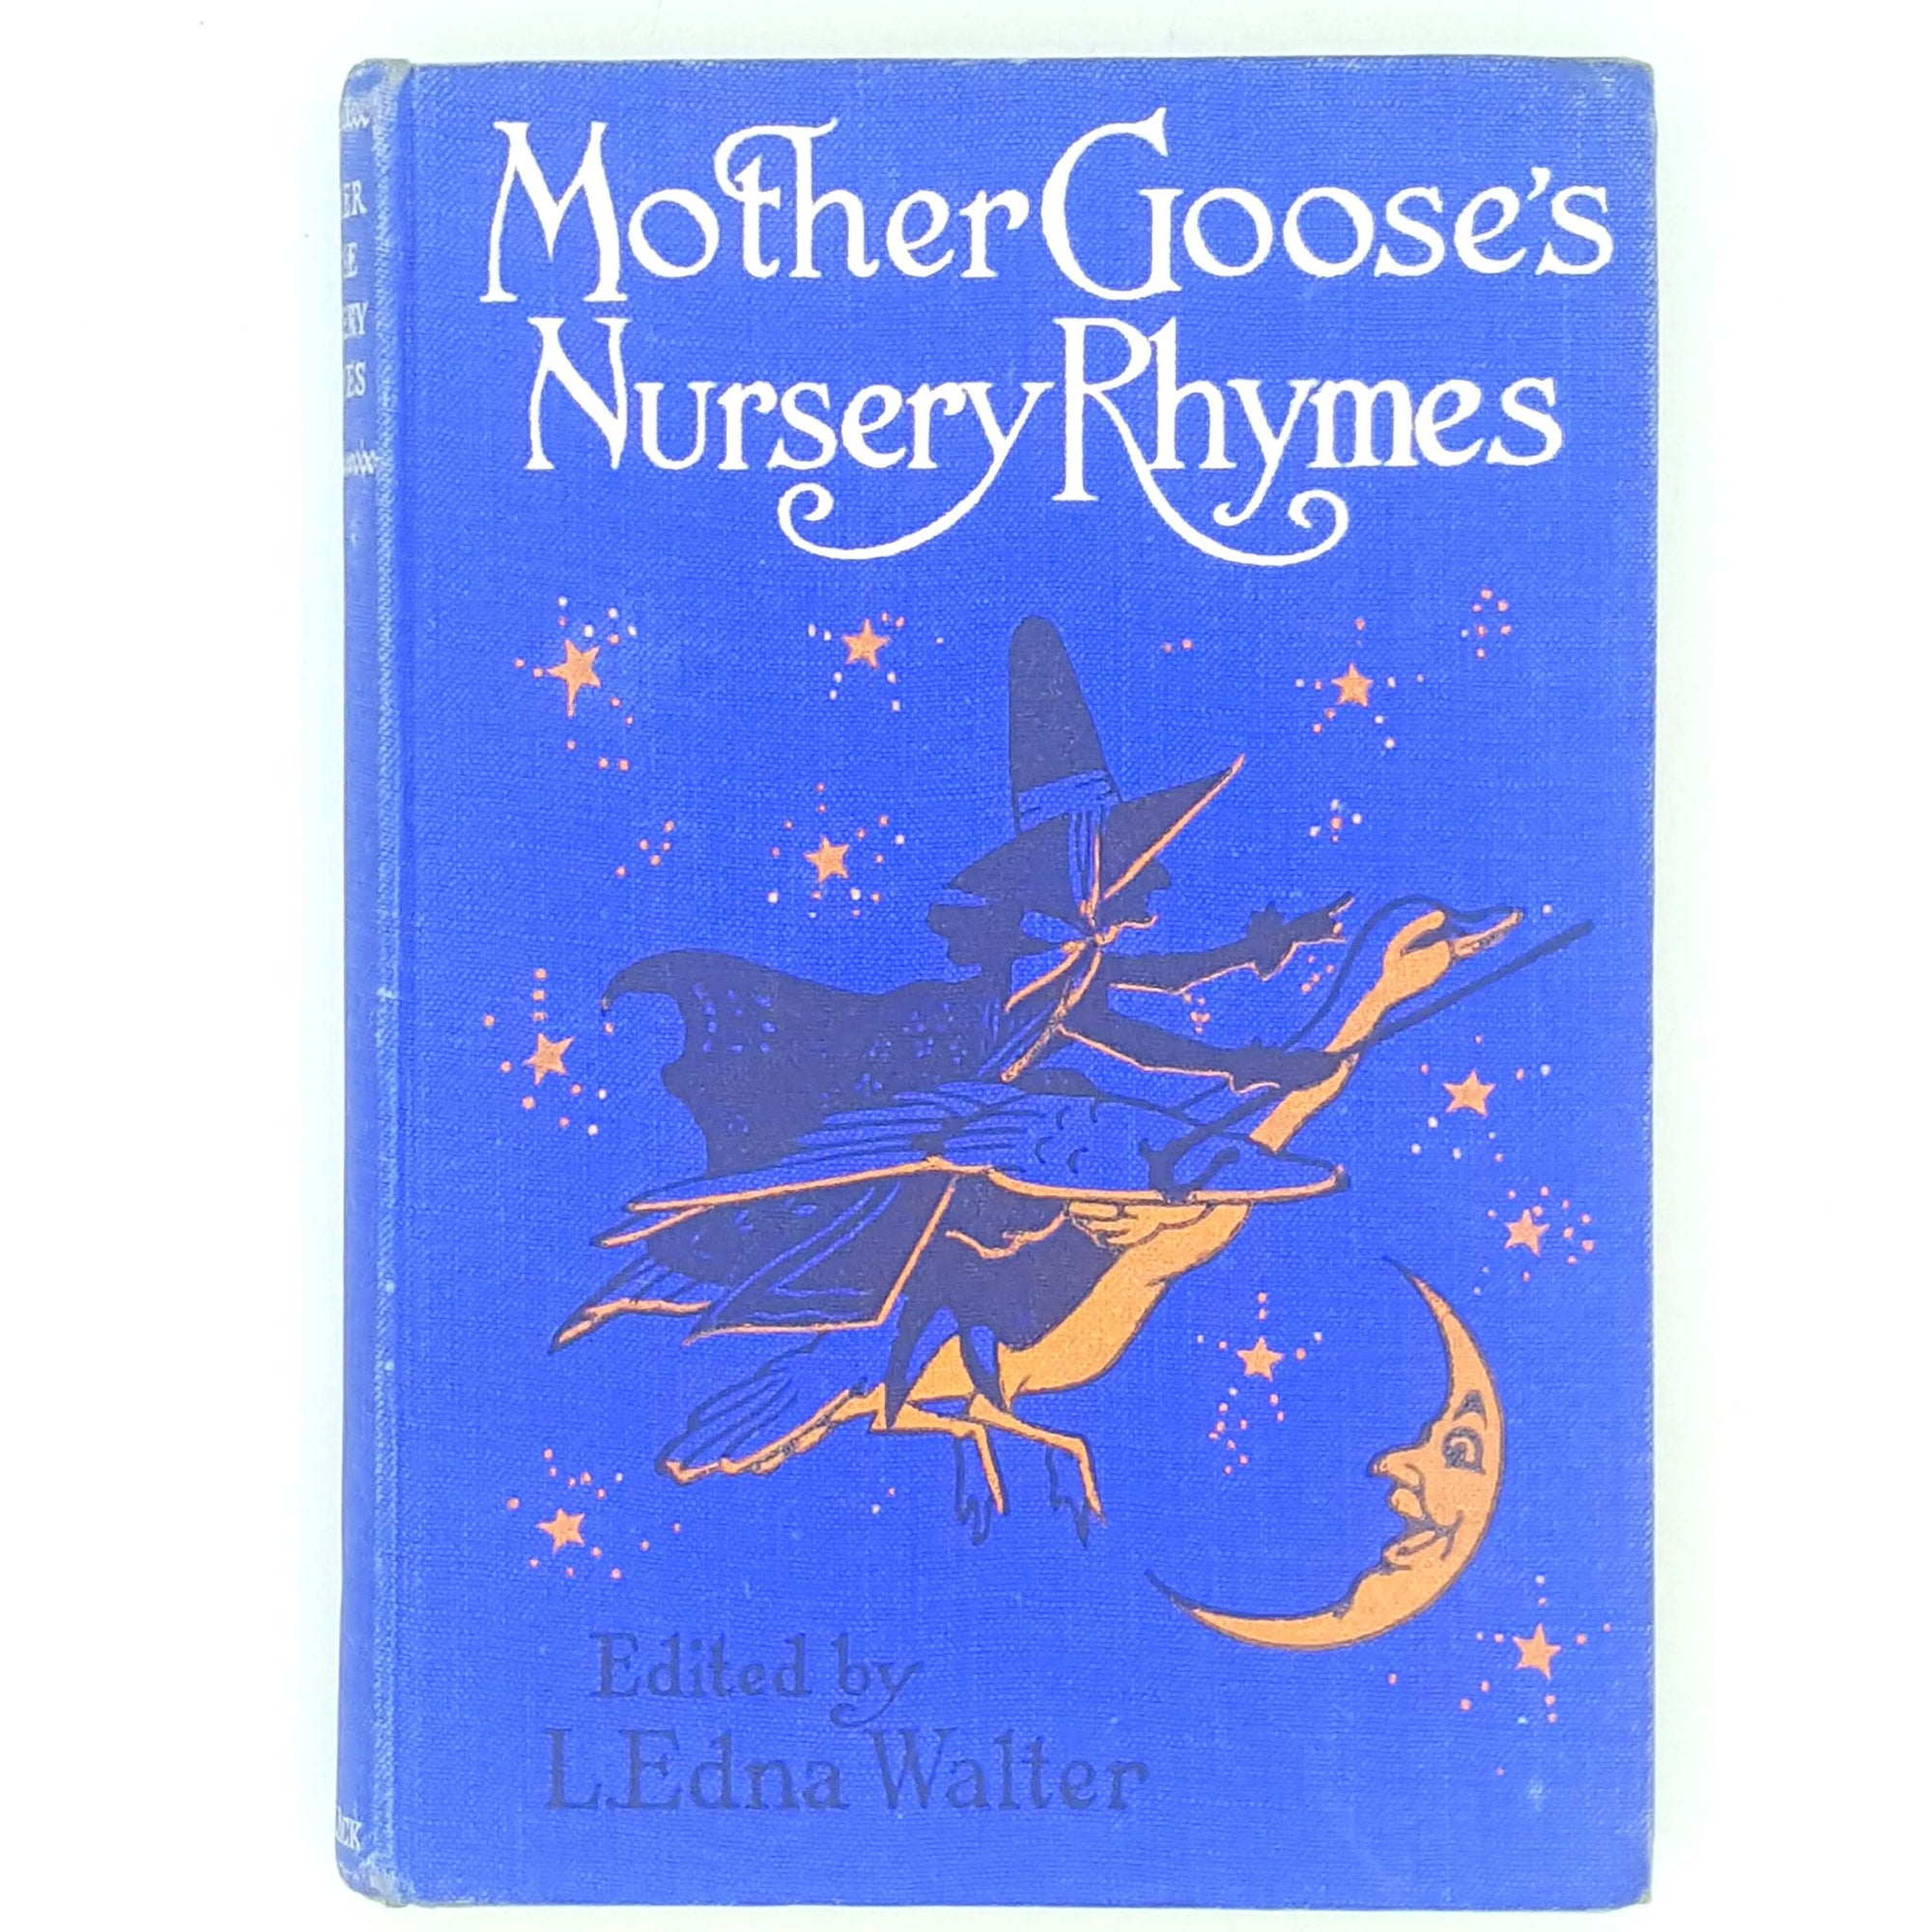 blue-thrift-mother-goose-childrens-country-house-library-decorative-antique-nursery-rhymes-vintage-patterned-old-books-